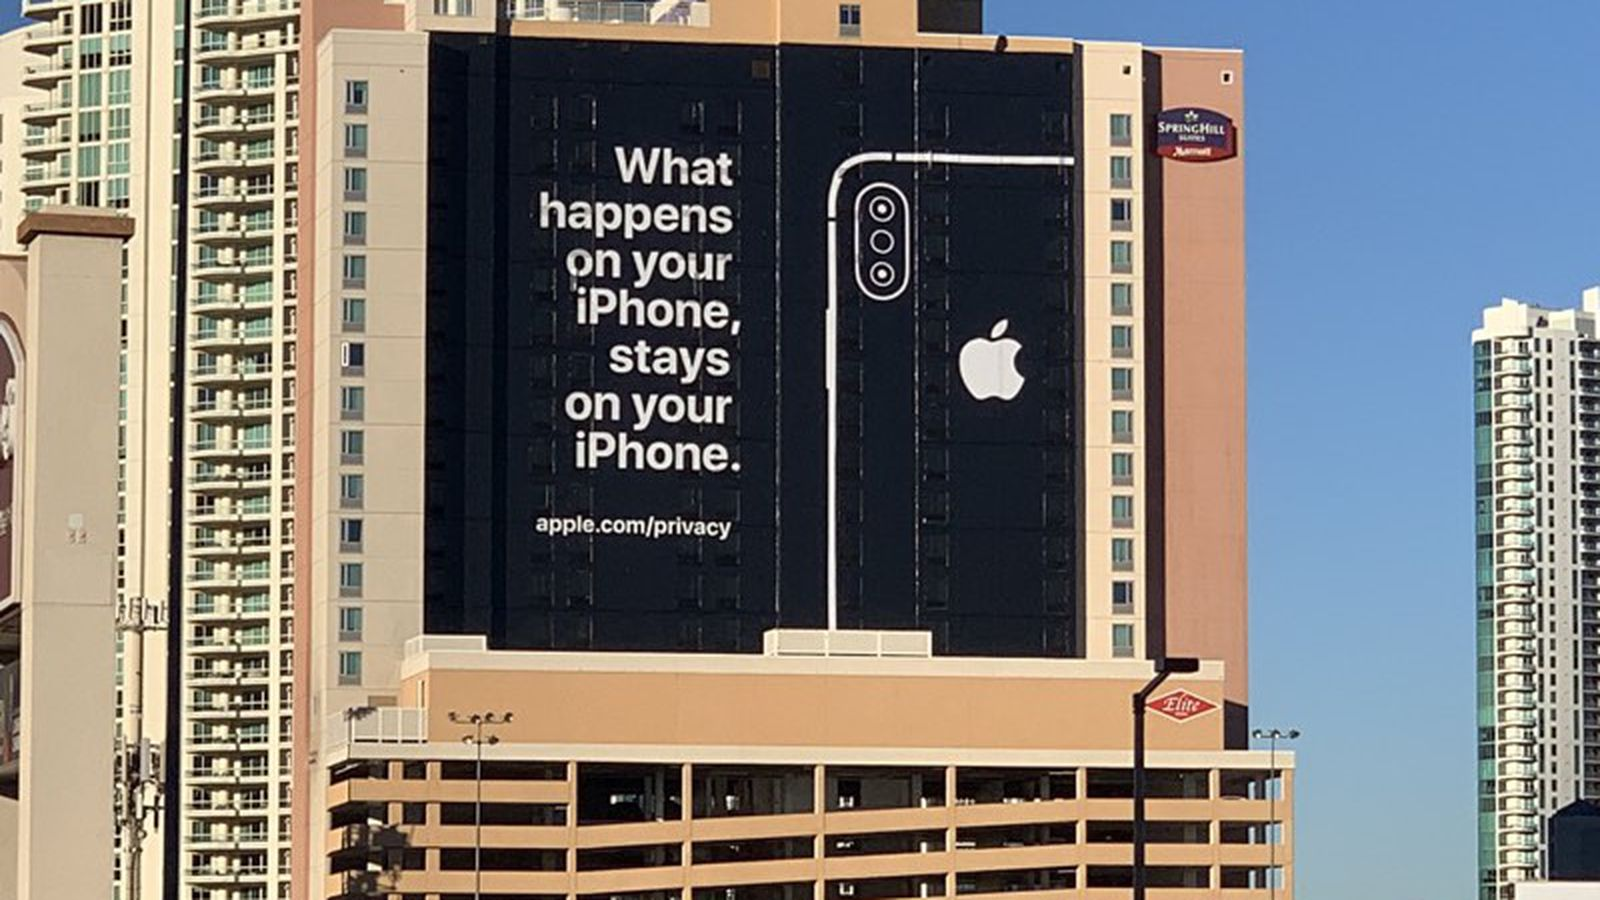 Ahead Of Ces Apple Puts Up Billboard Touting Privacy In Las Vegas Macrumors